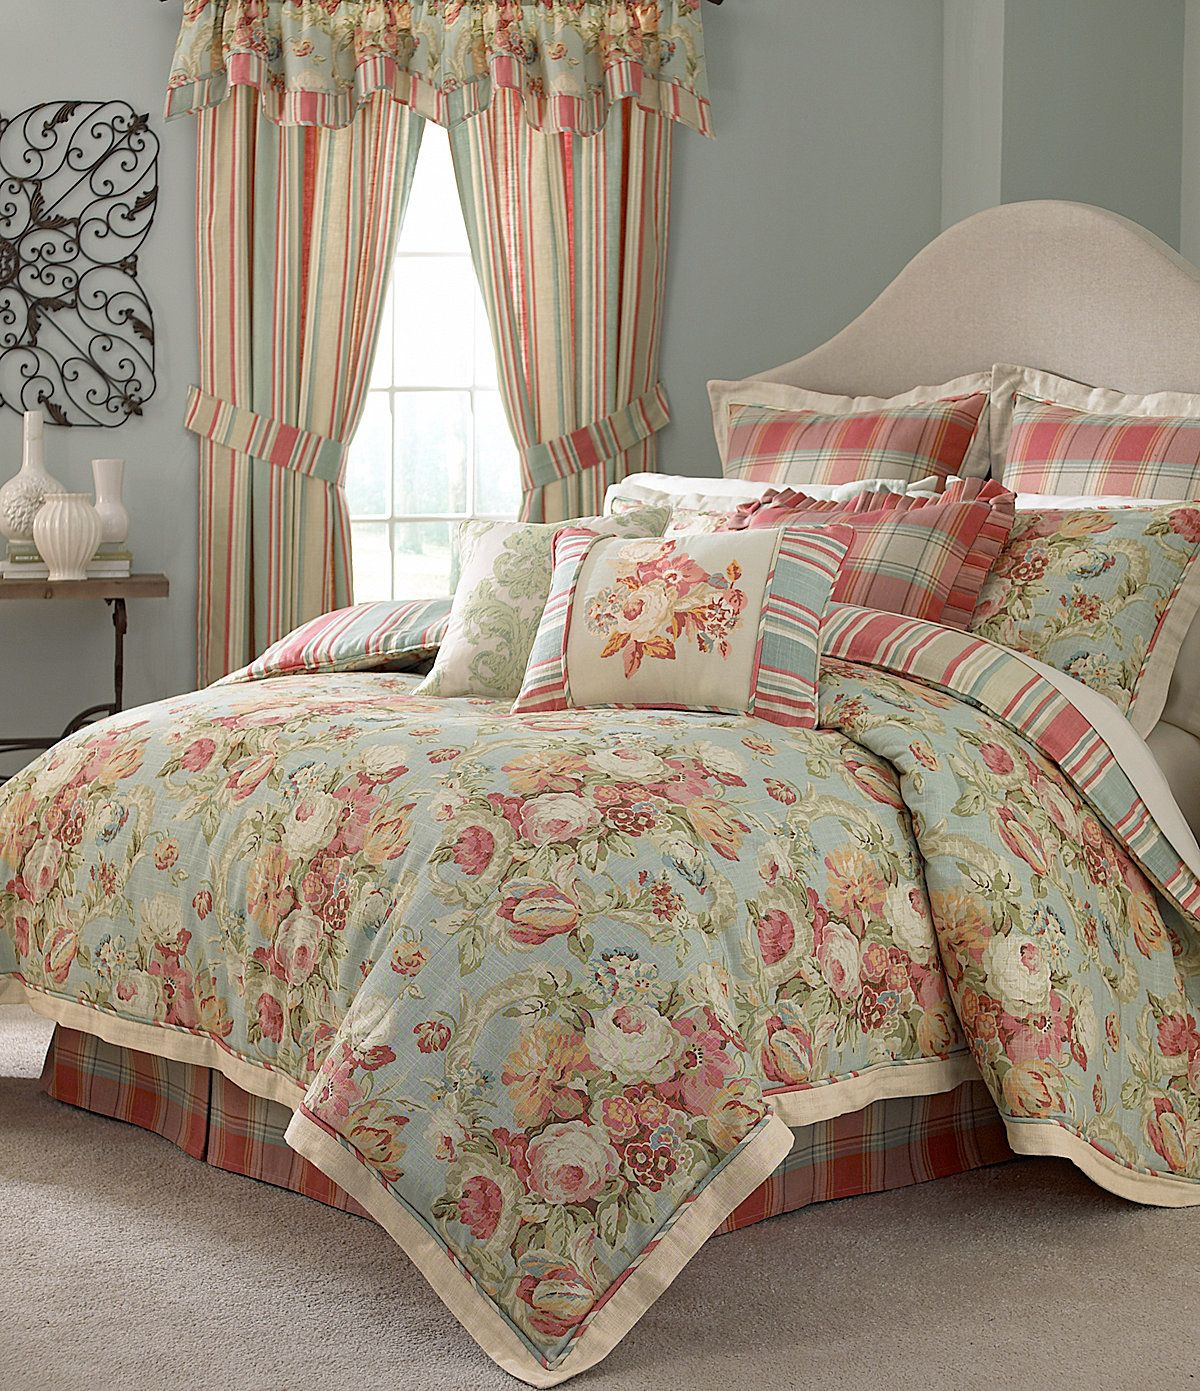 Waverly Spring Bling Bedding Collection Comforter Sets Waverly